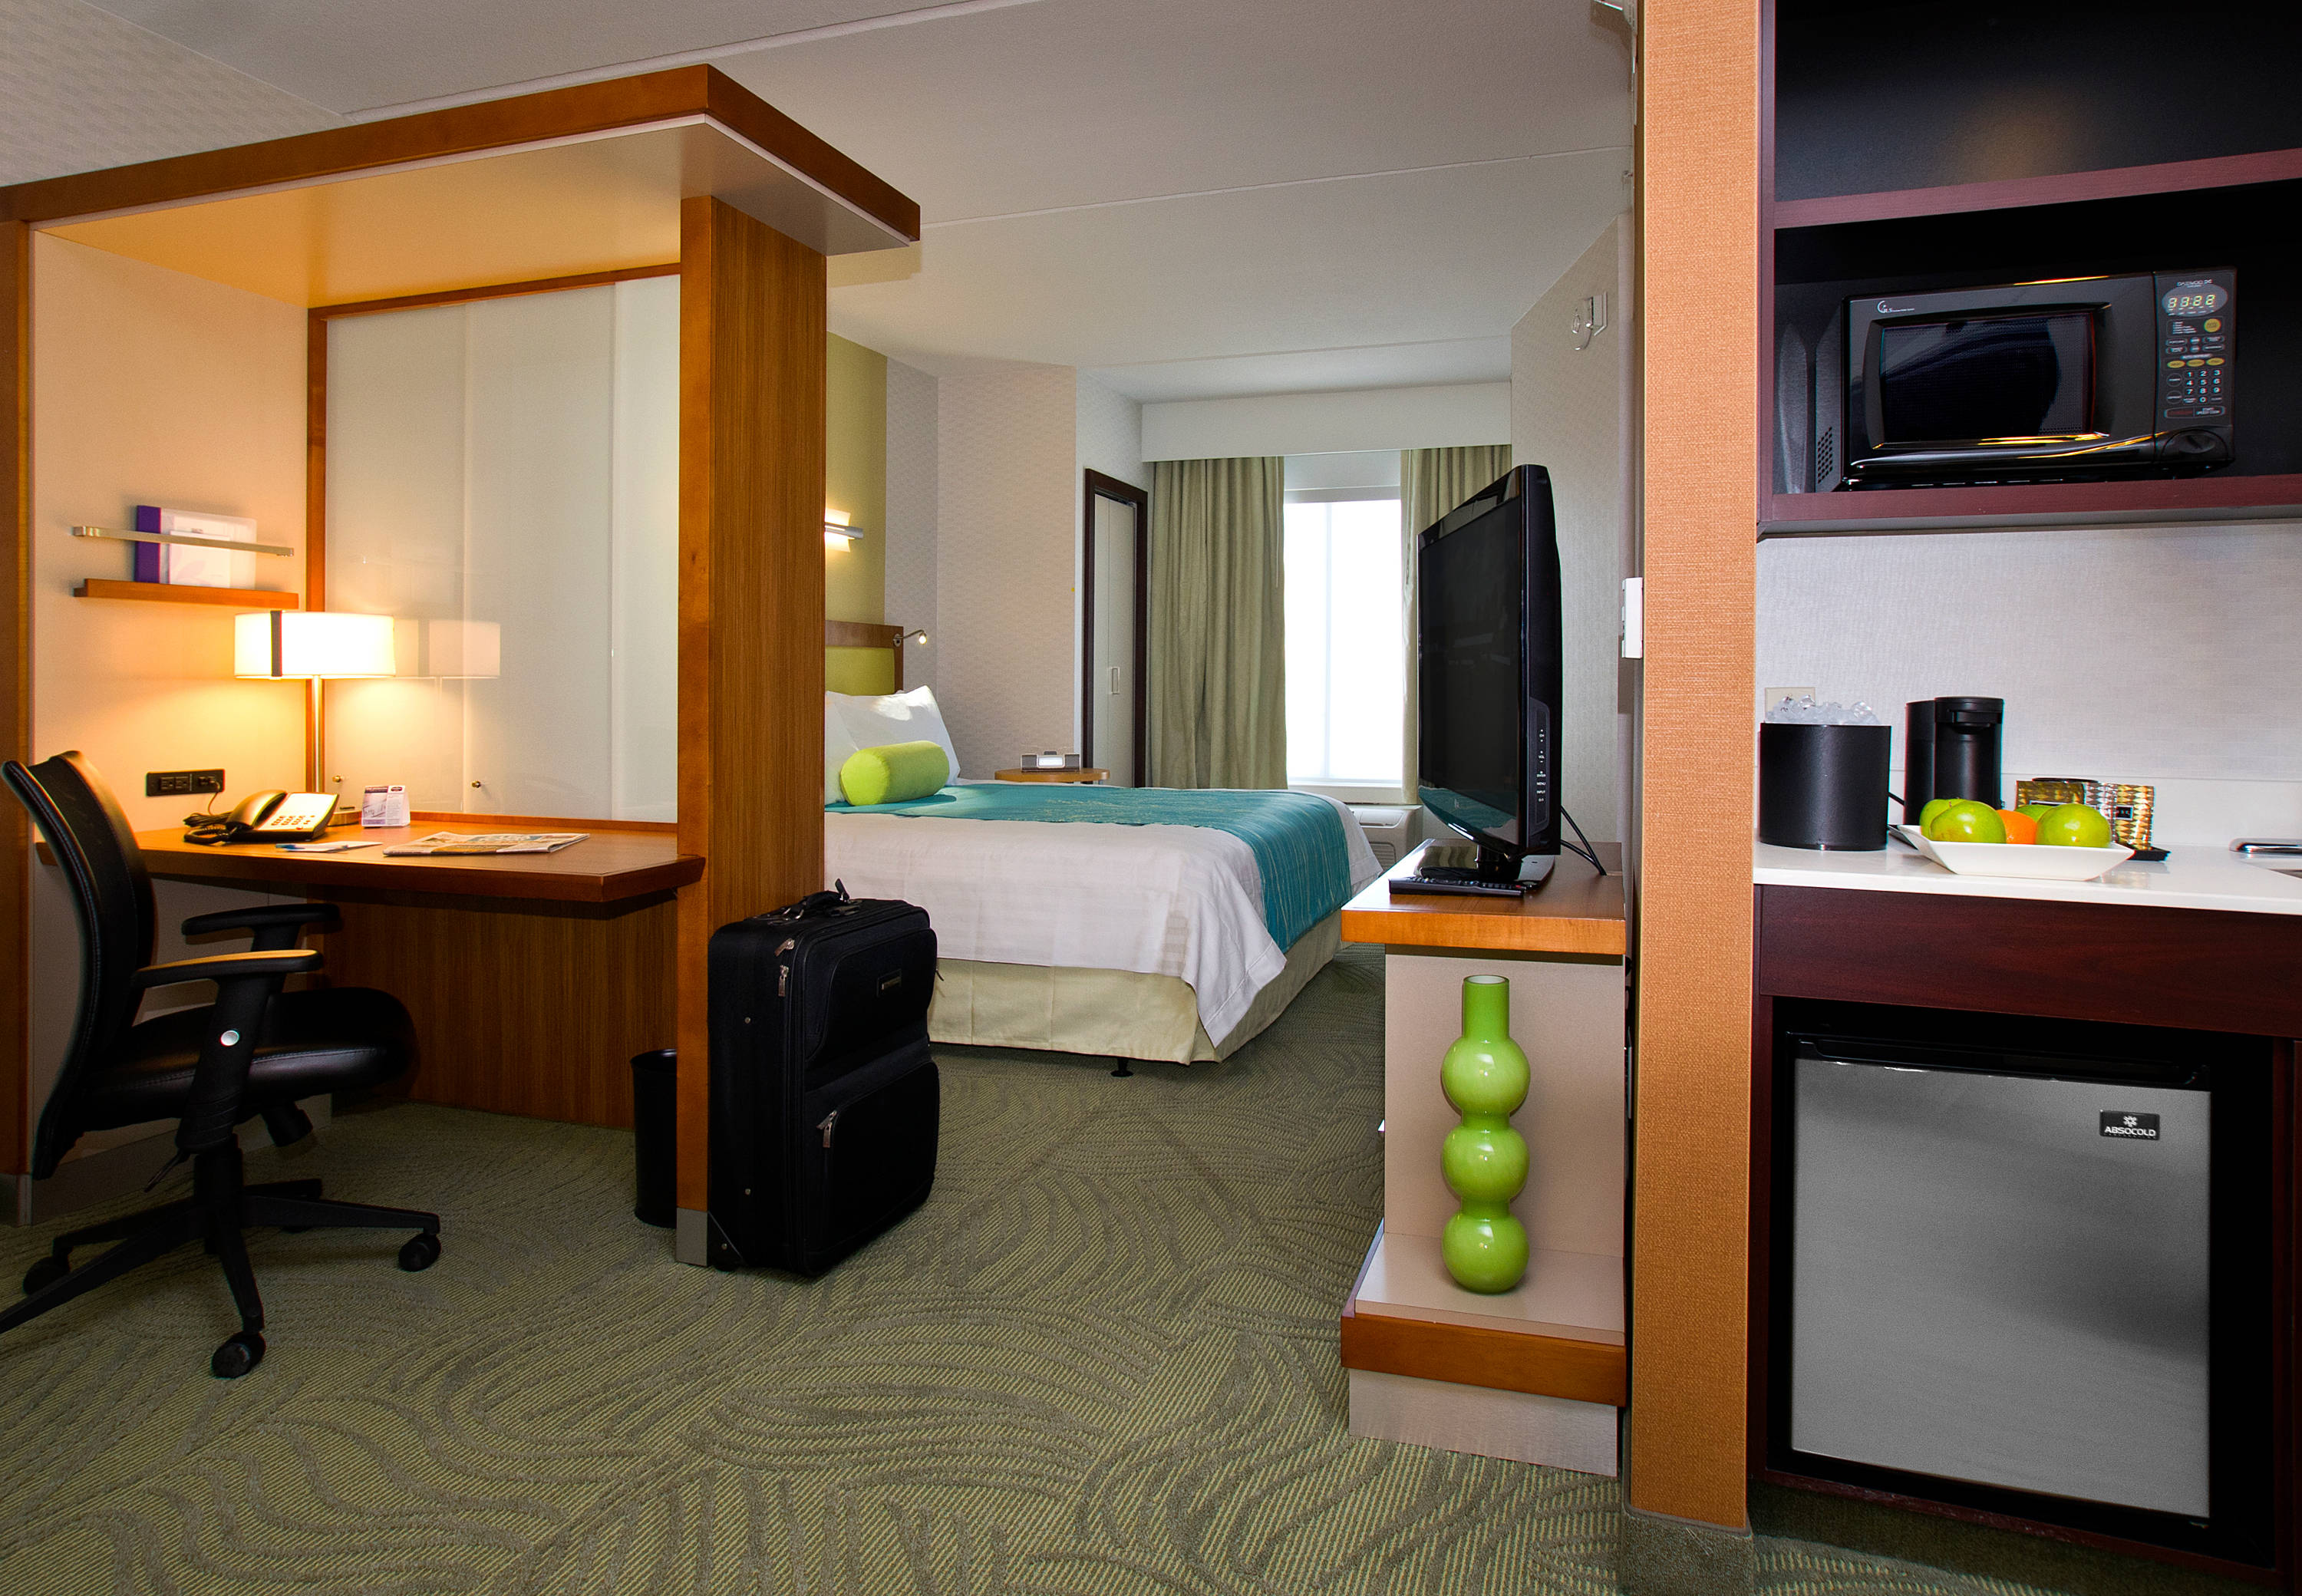 SpringHill Suites by Marriott San Antonio Alamo Plaza/Convention Center image 9